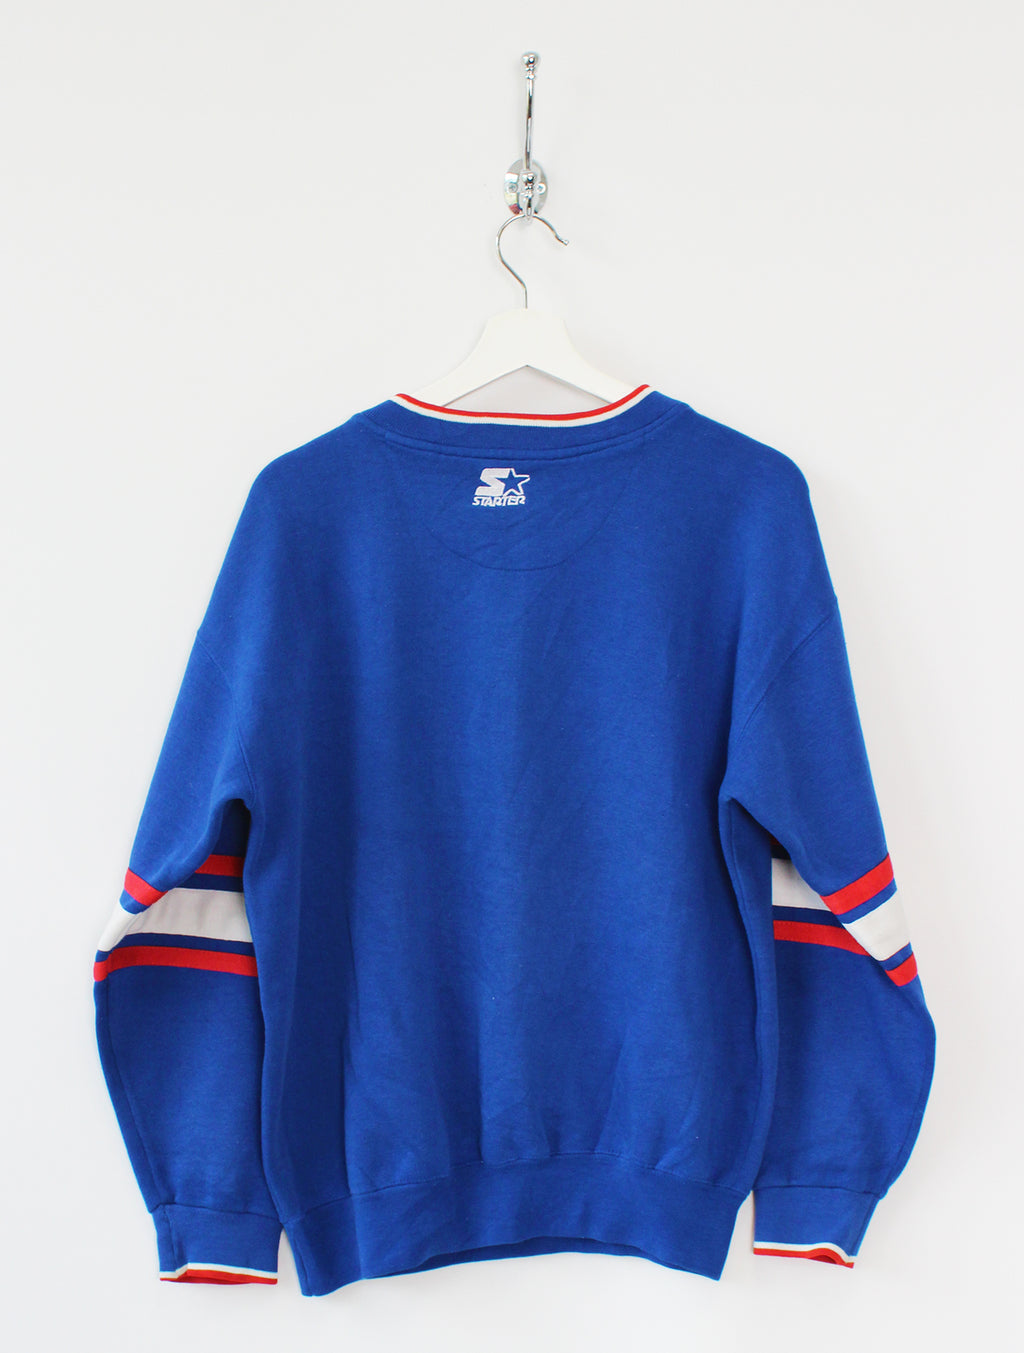 Starter New York Rangers Sweatshirt (S)